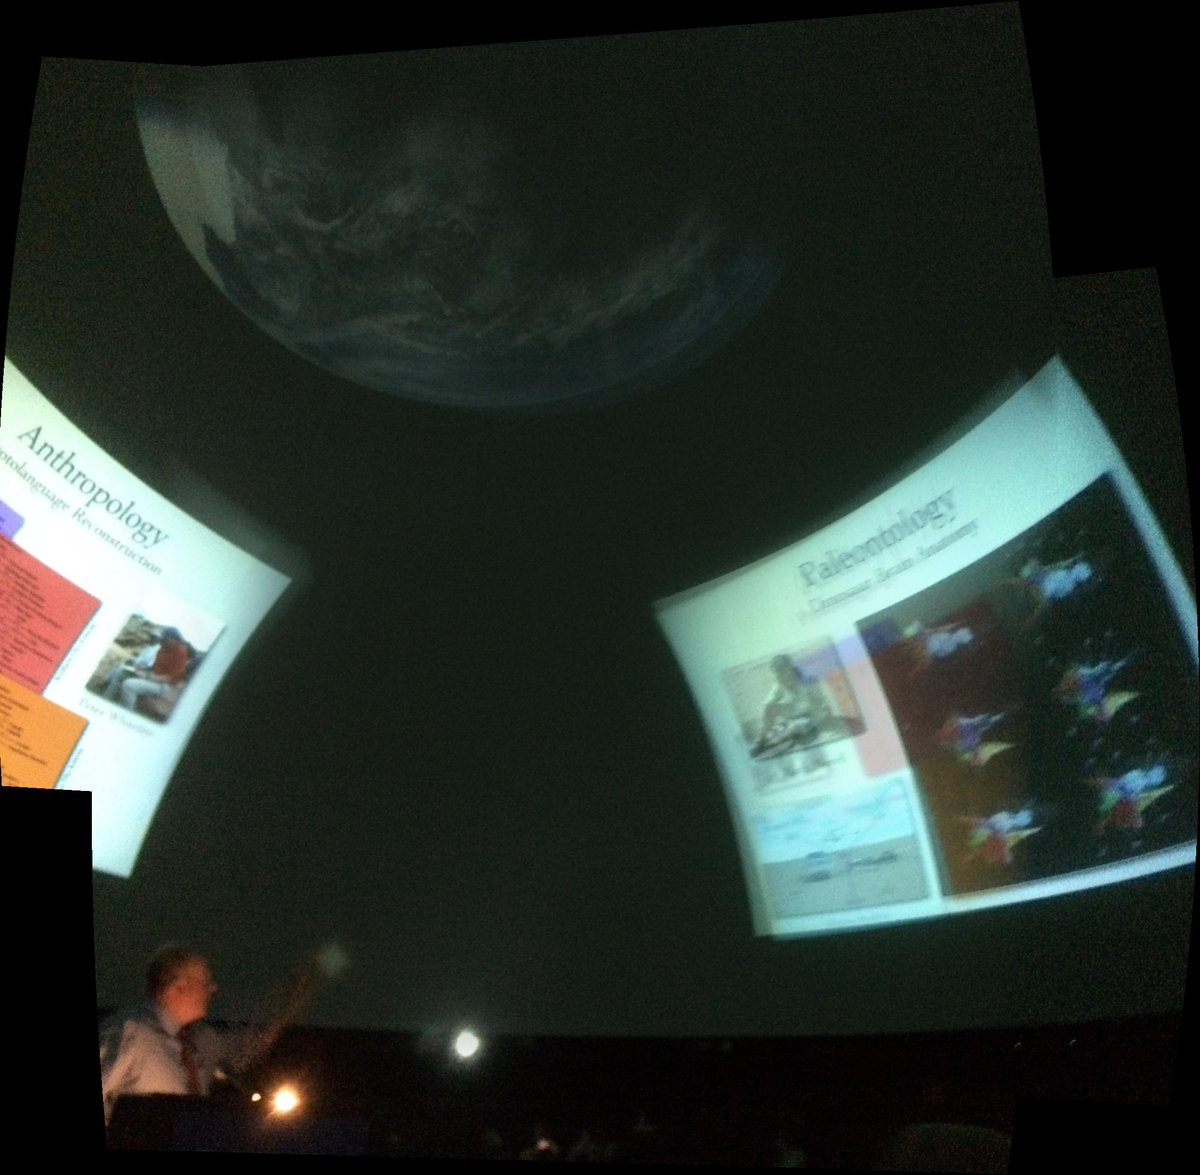 Getting an overview of the research at @AMNH. (We're in the dome!) 🌌 http://t.co/SwHIcEChJ8